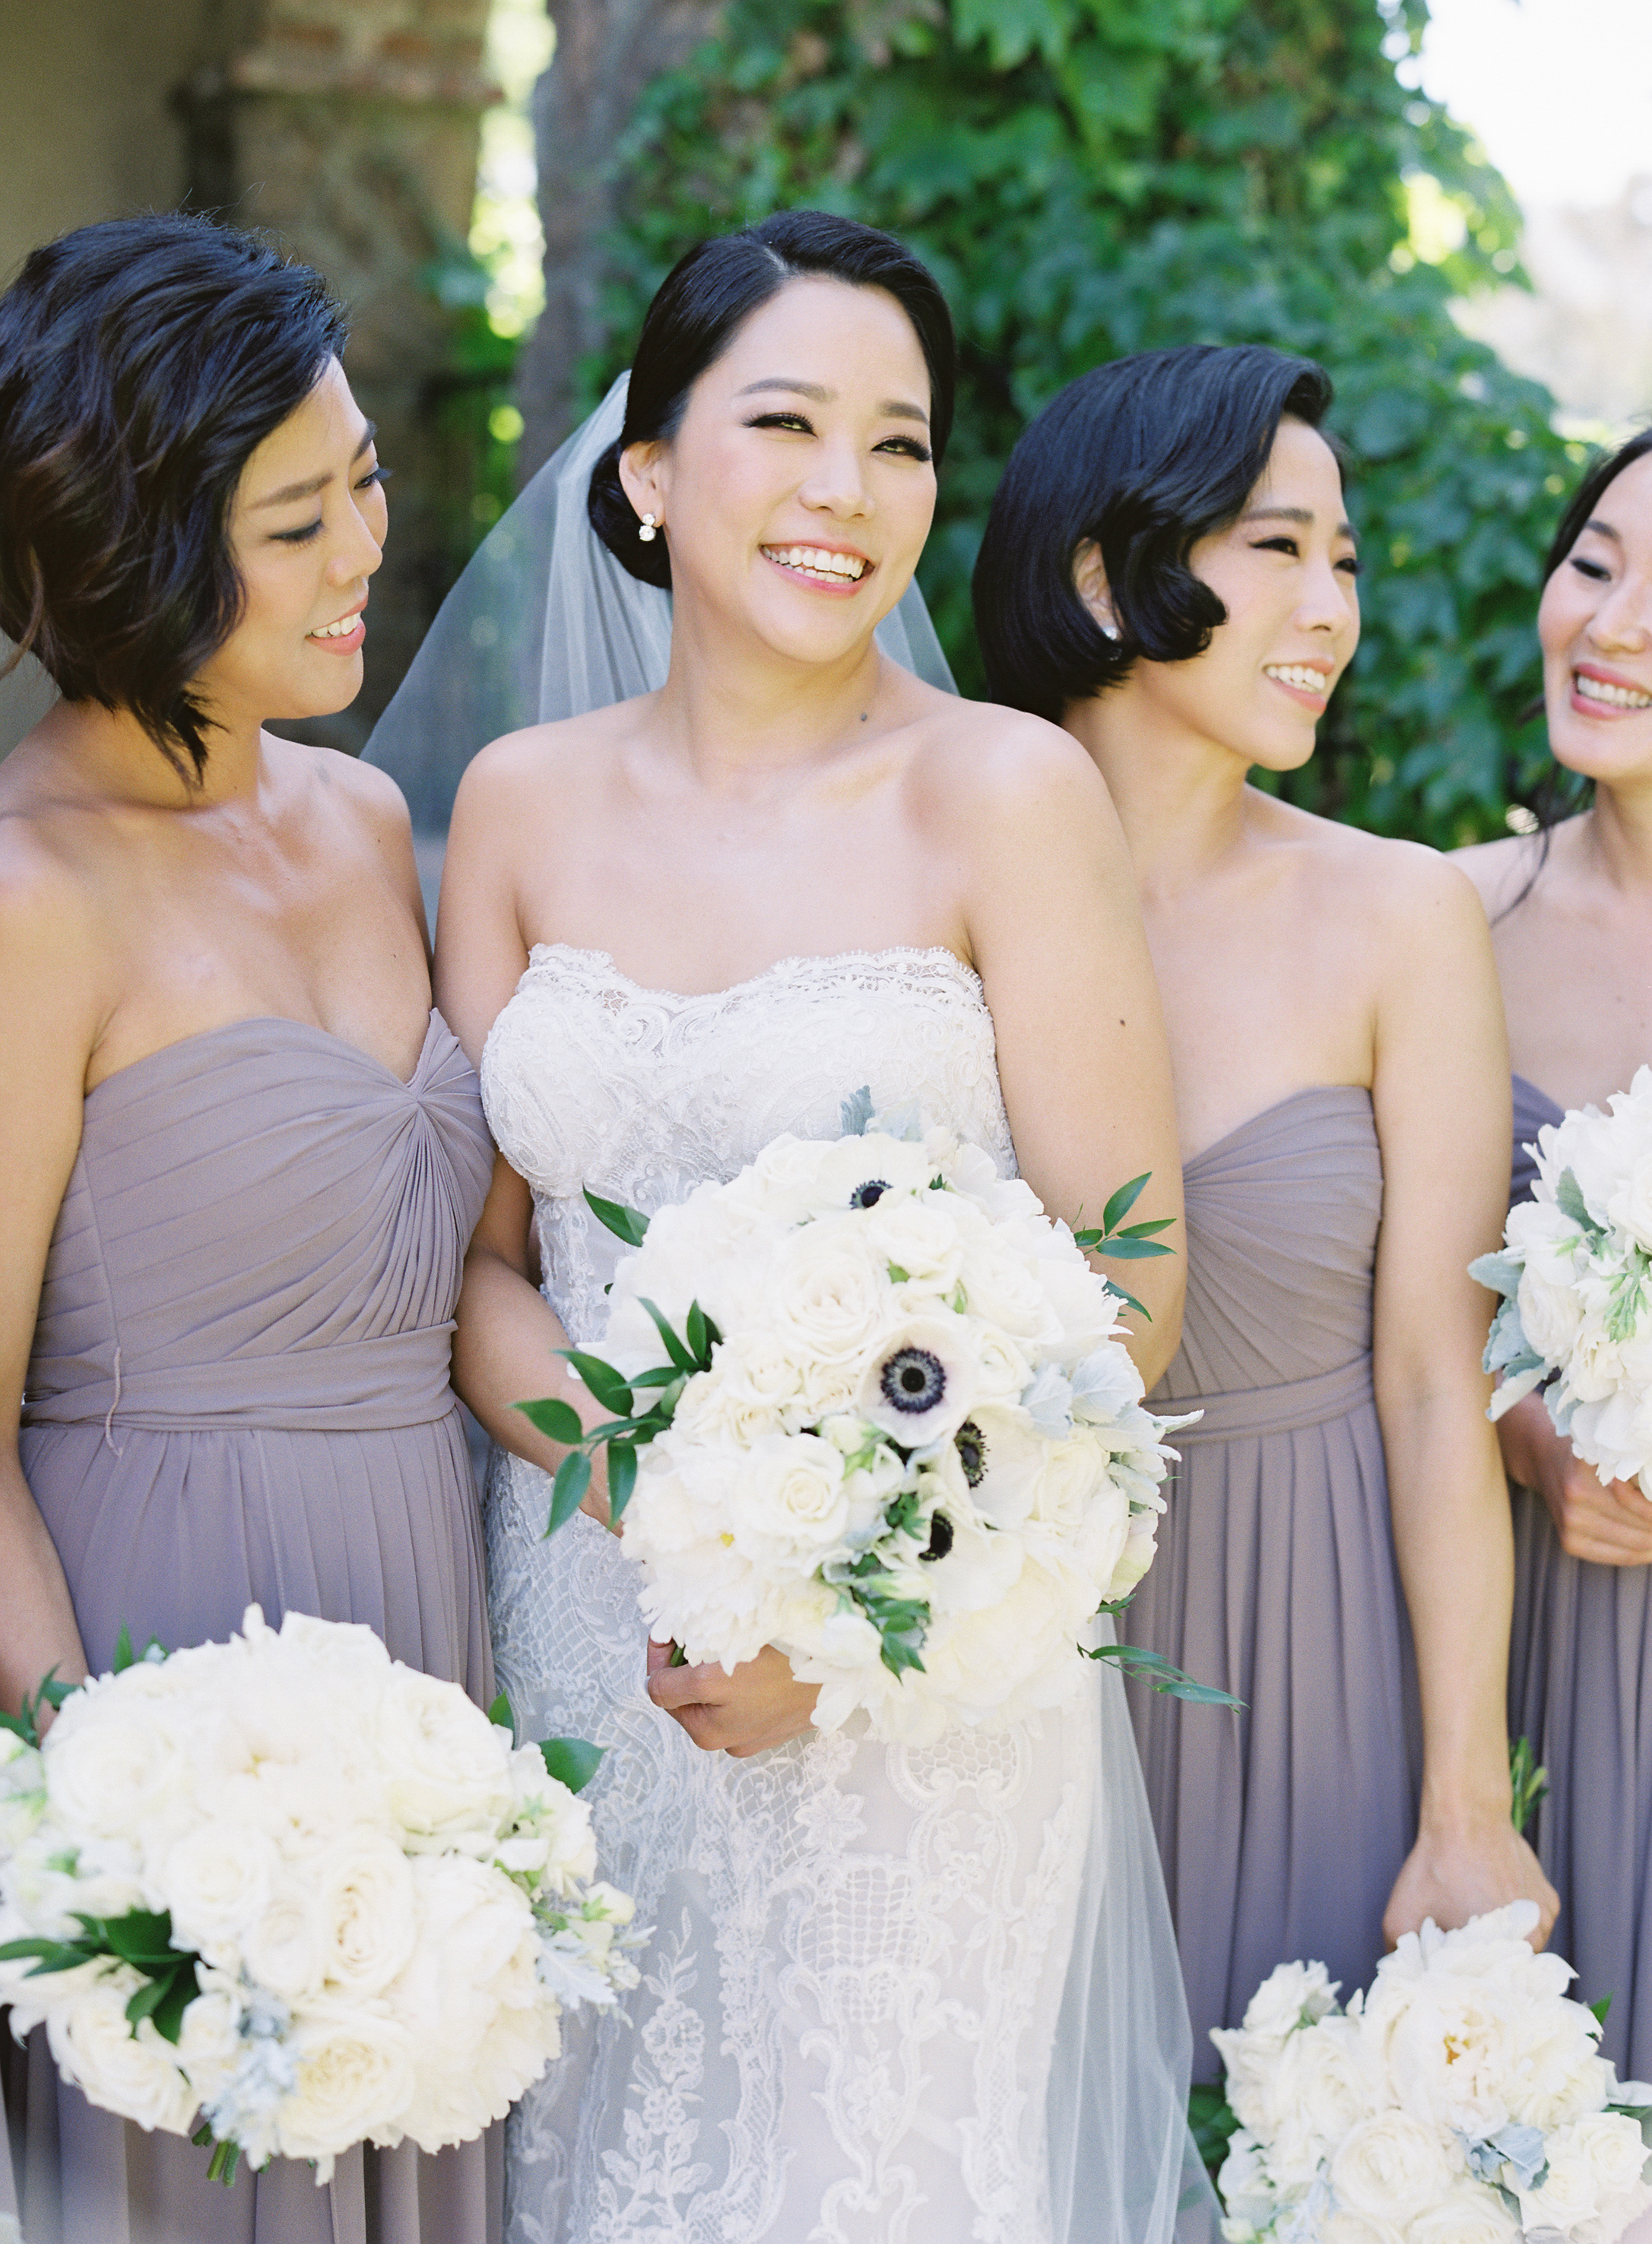 Meghan Mehan Photography - Sonoma Golf Club Wedding - California Film Wedding Photographer - 033.jpg